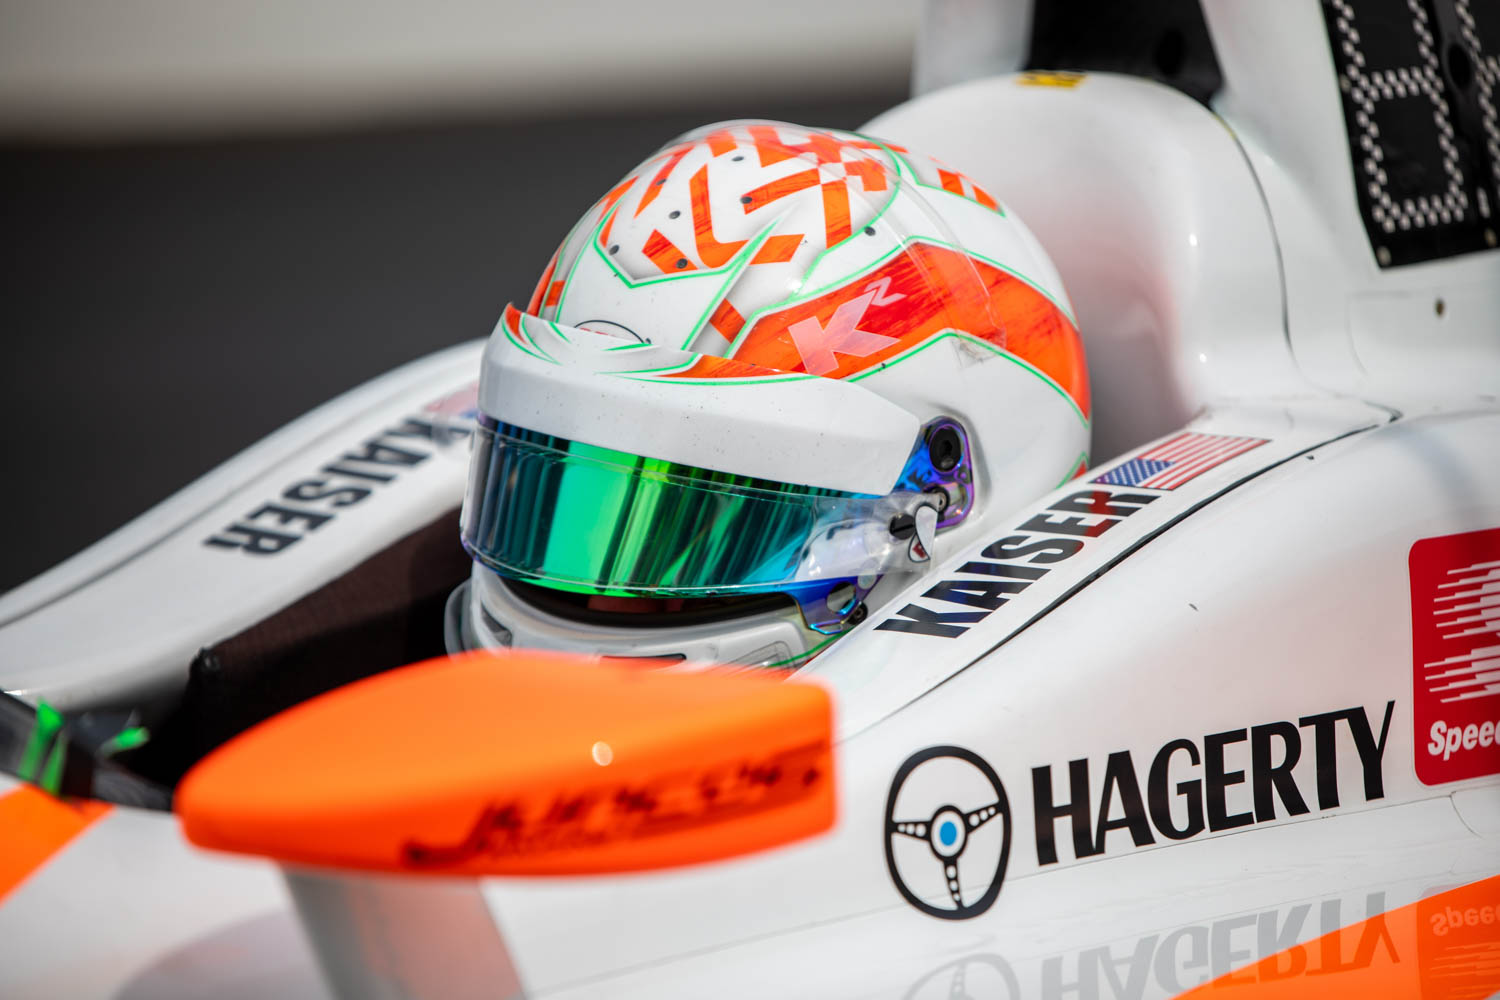 Juncos racing and Hagerty